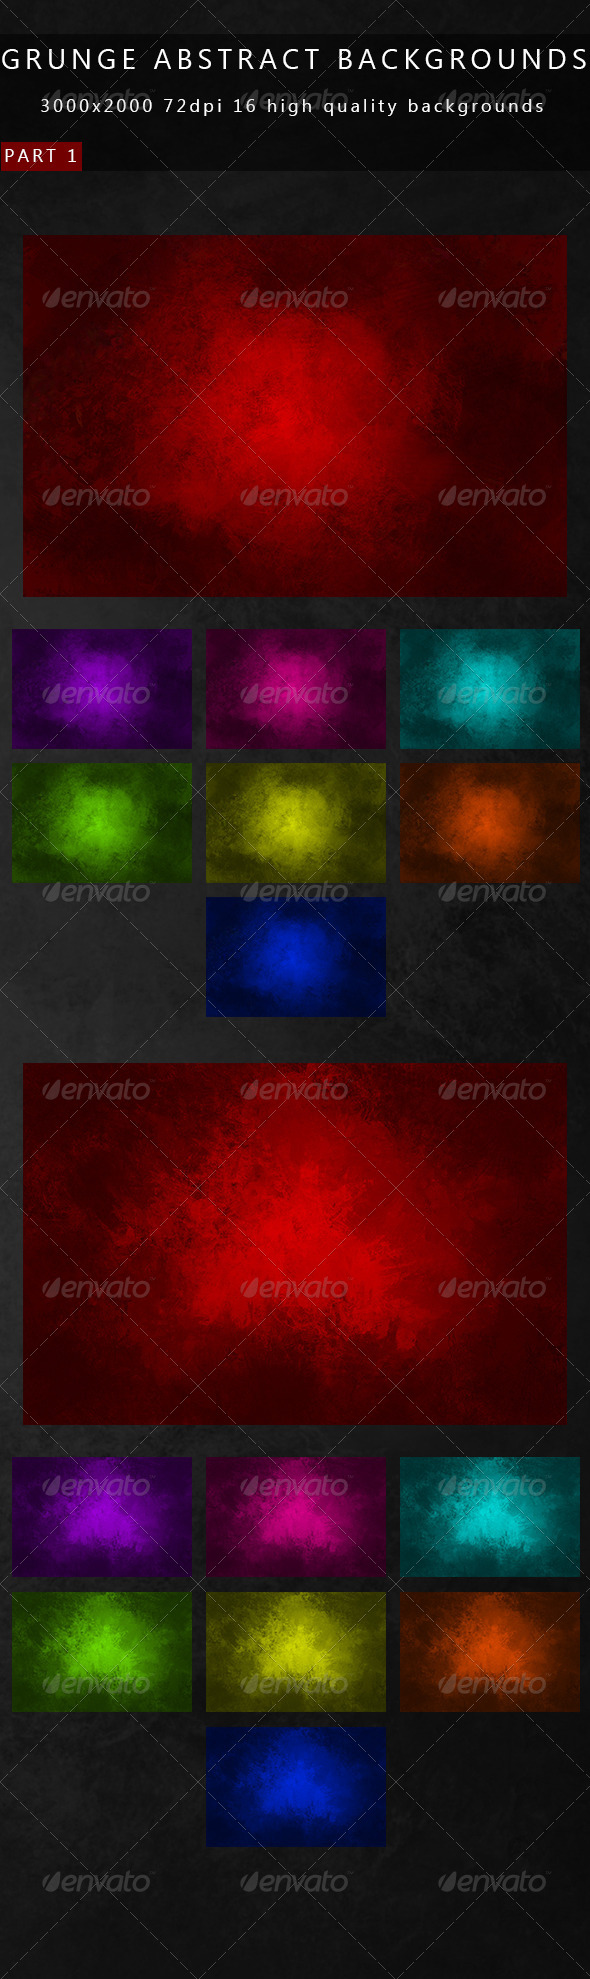 Grunge Abstract Backgrounds 2in1 - Abstract Backgrounds